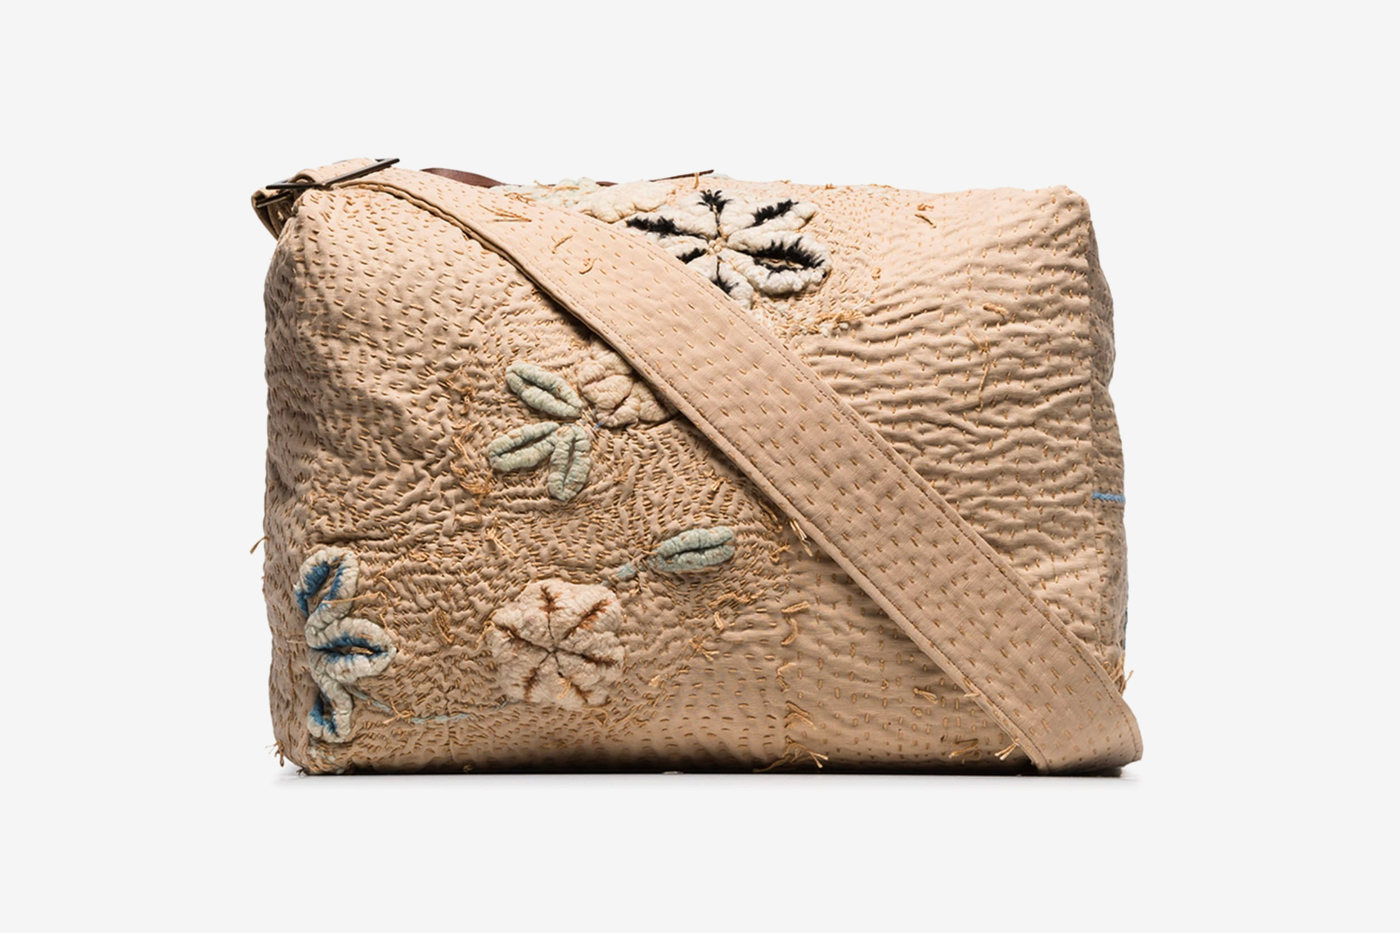 By Walid Beige Tapestry Messenger Bag Release  browns browns fashion bags Sashiko boro